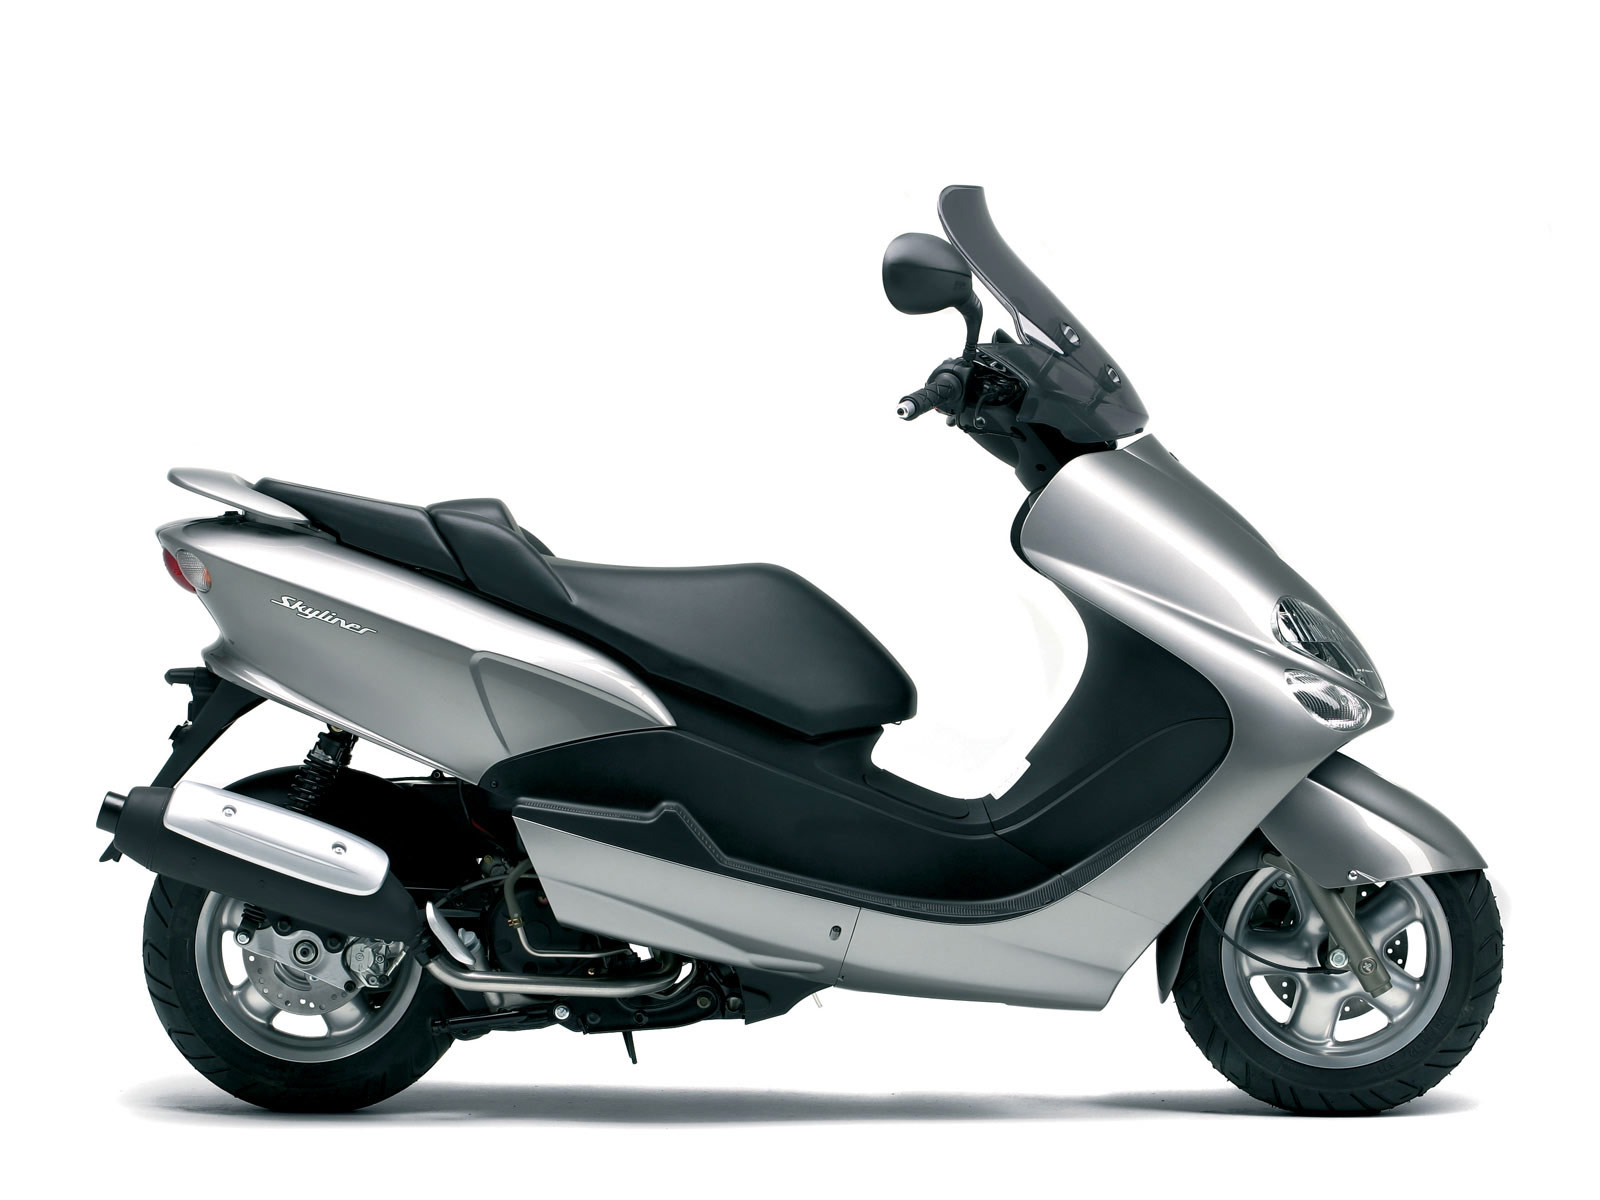 2005 mbk skyliner 125 scooter picture accident lawyers information. Black Bedroom Furniture Sets. Home Design Ideas